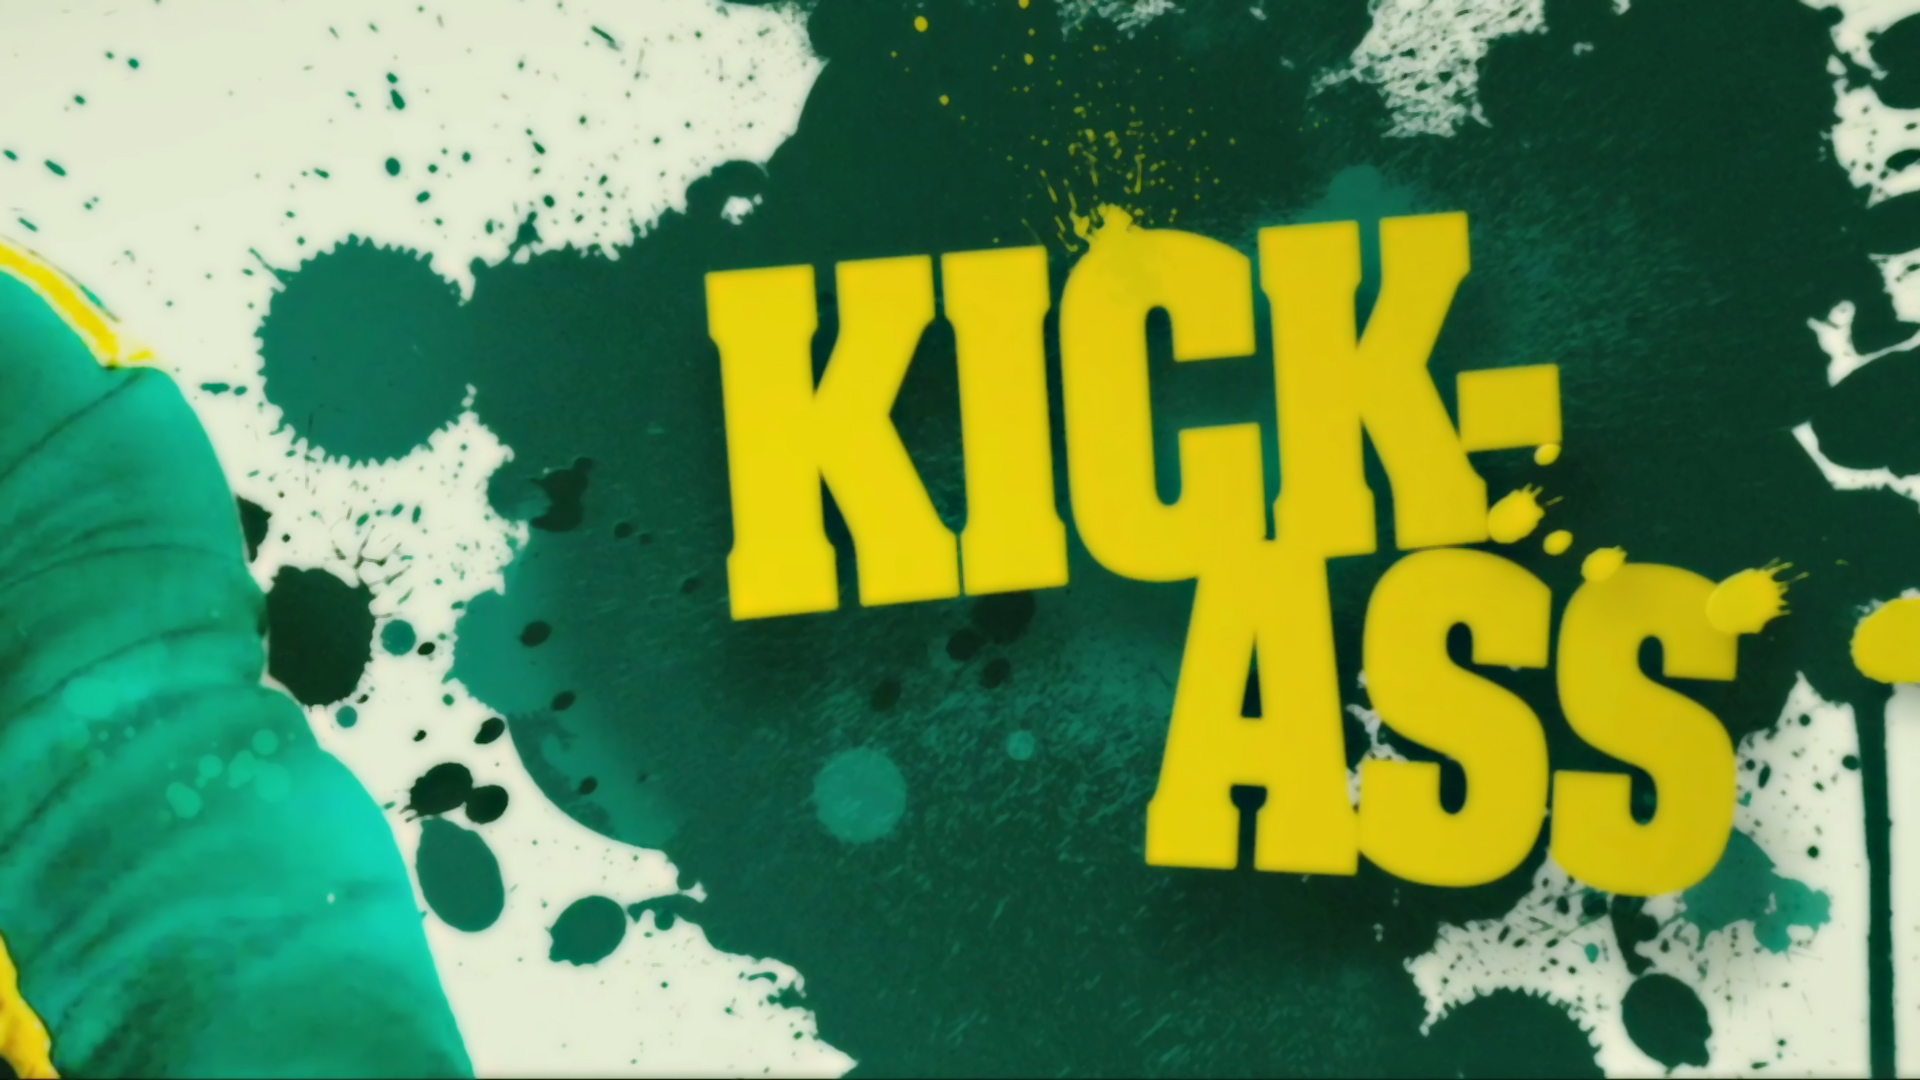 Kick ass desktop backgrounds — 1